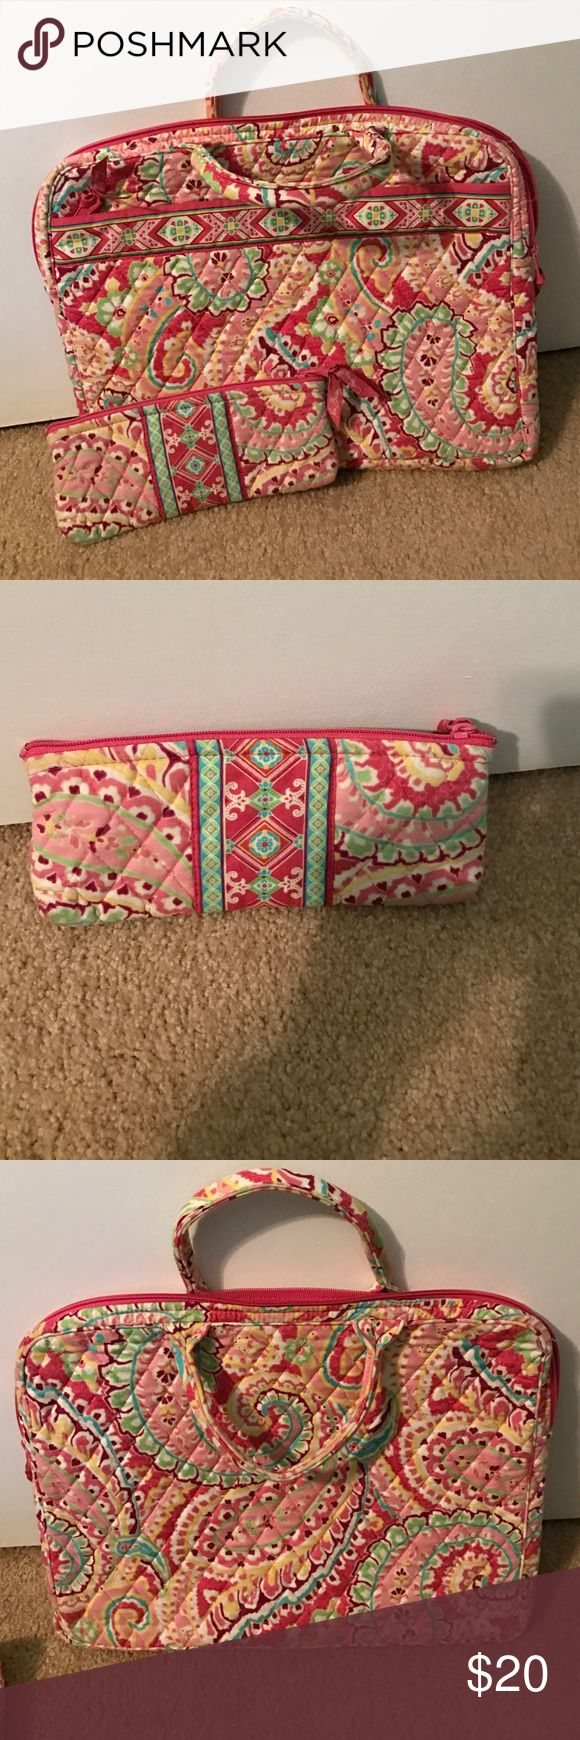 Vera Bradley Laptop Case and Pencil Pouch Beautiful Vera Bradley Laptop Case with pencil pouch included. Both in great condition. The Laptop Case fits up to a 16 inch laptop. Vera Bradley Accessories Laptop Cases